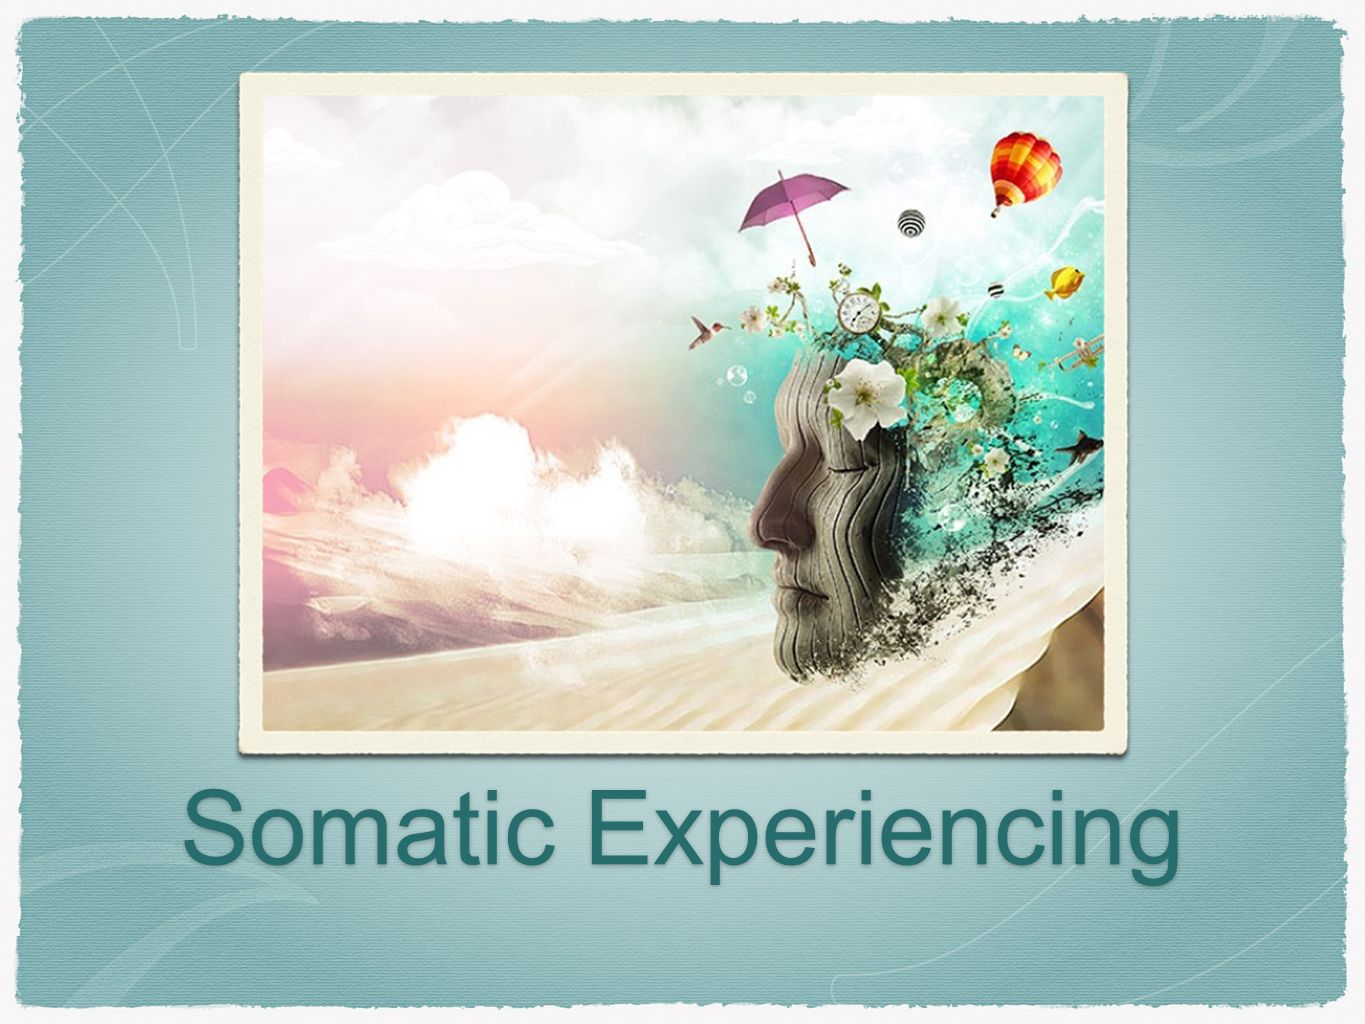 Somatic Experiencing